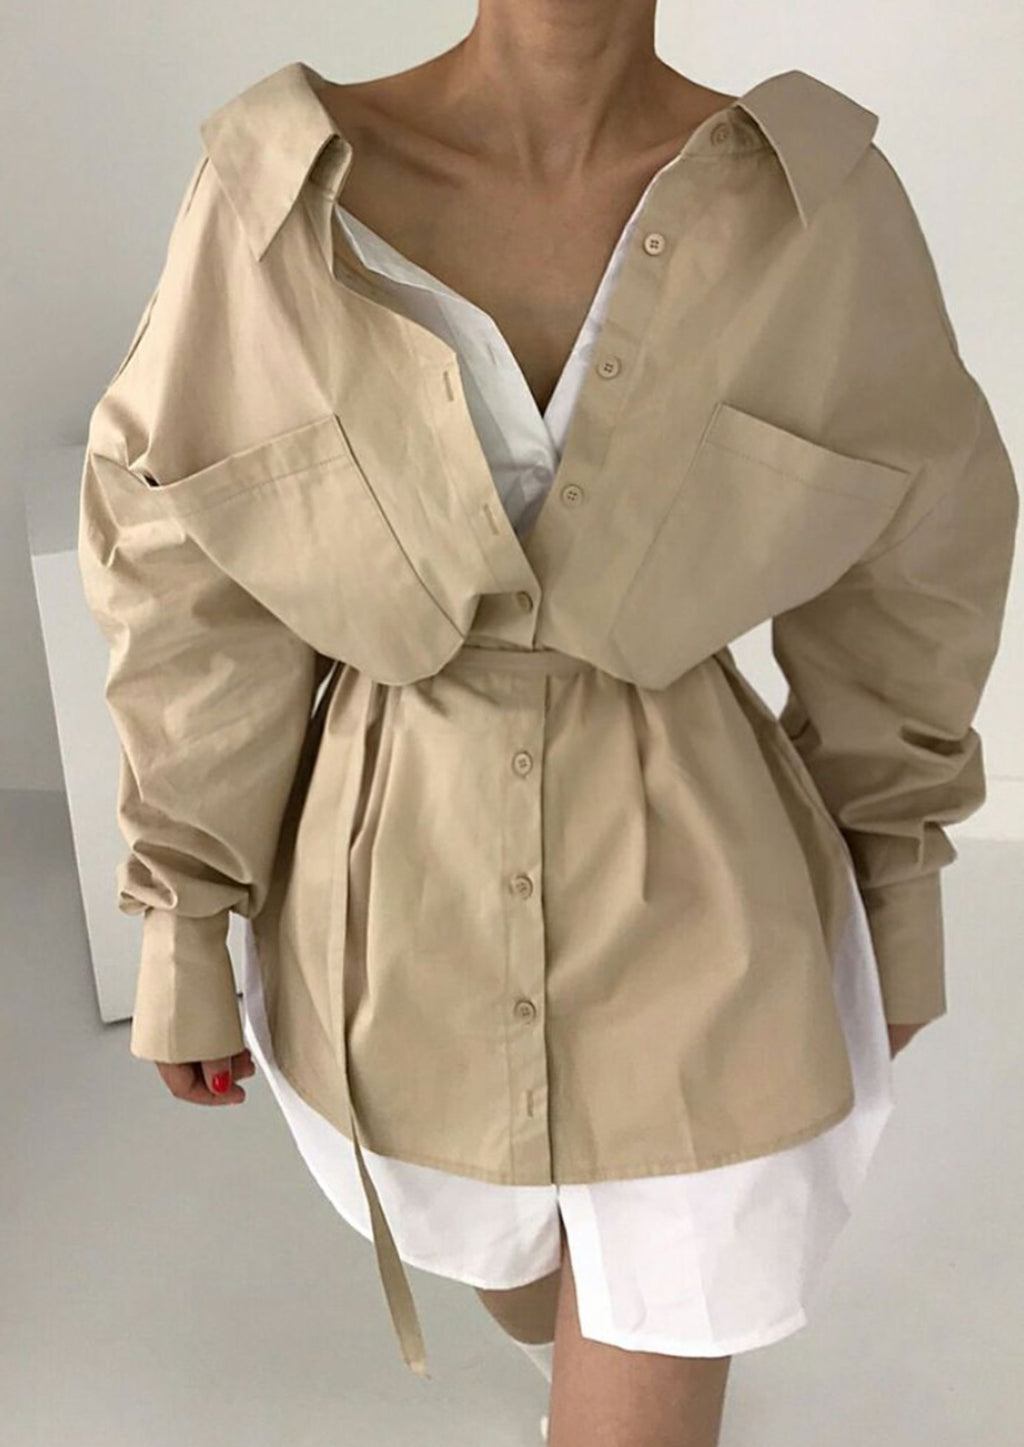 Layered Oversized Shirt Dress in Beige